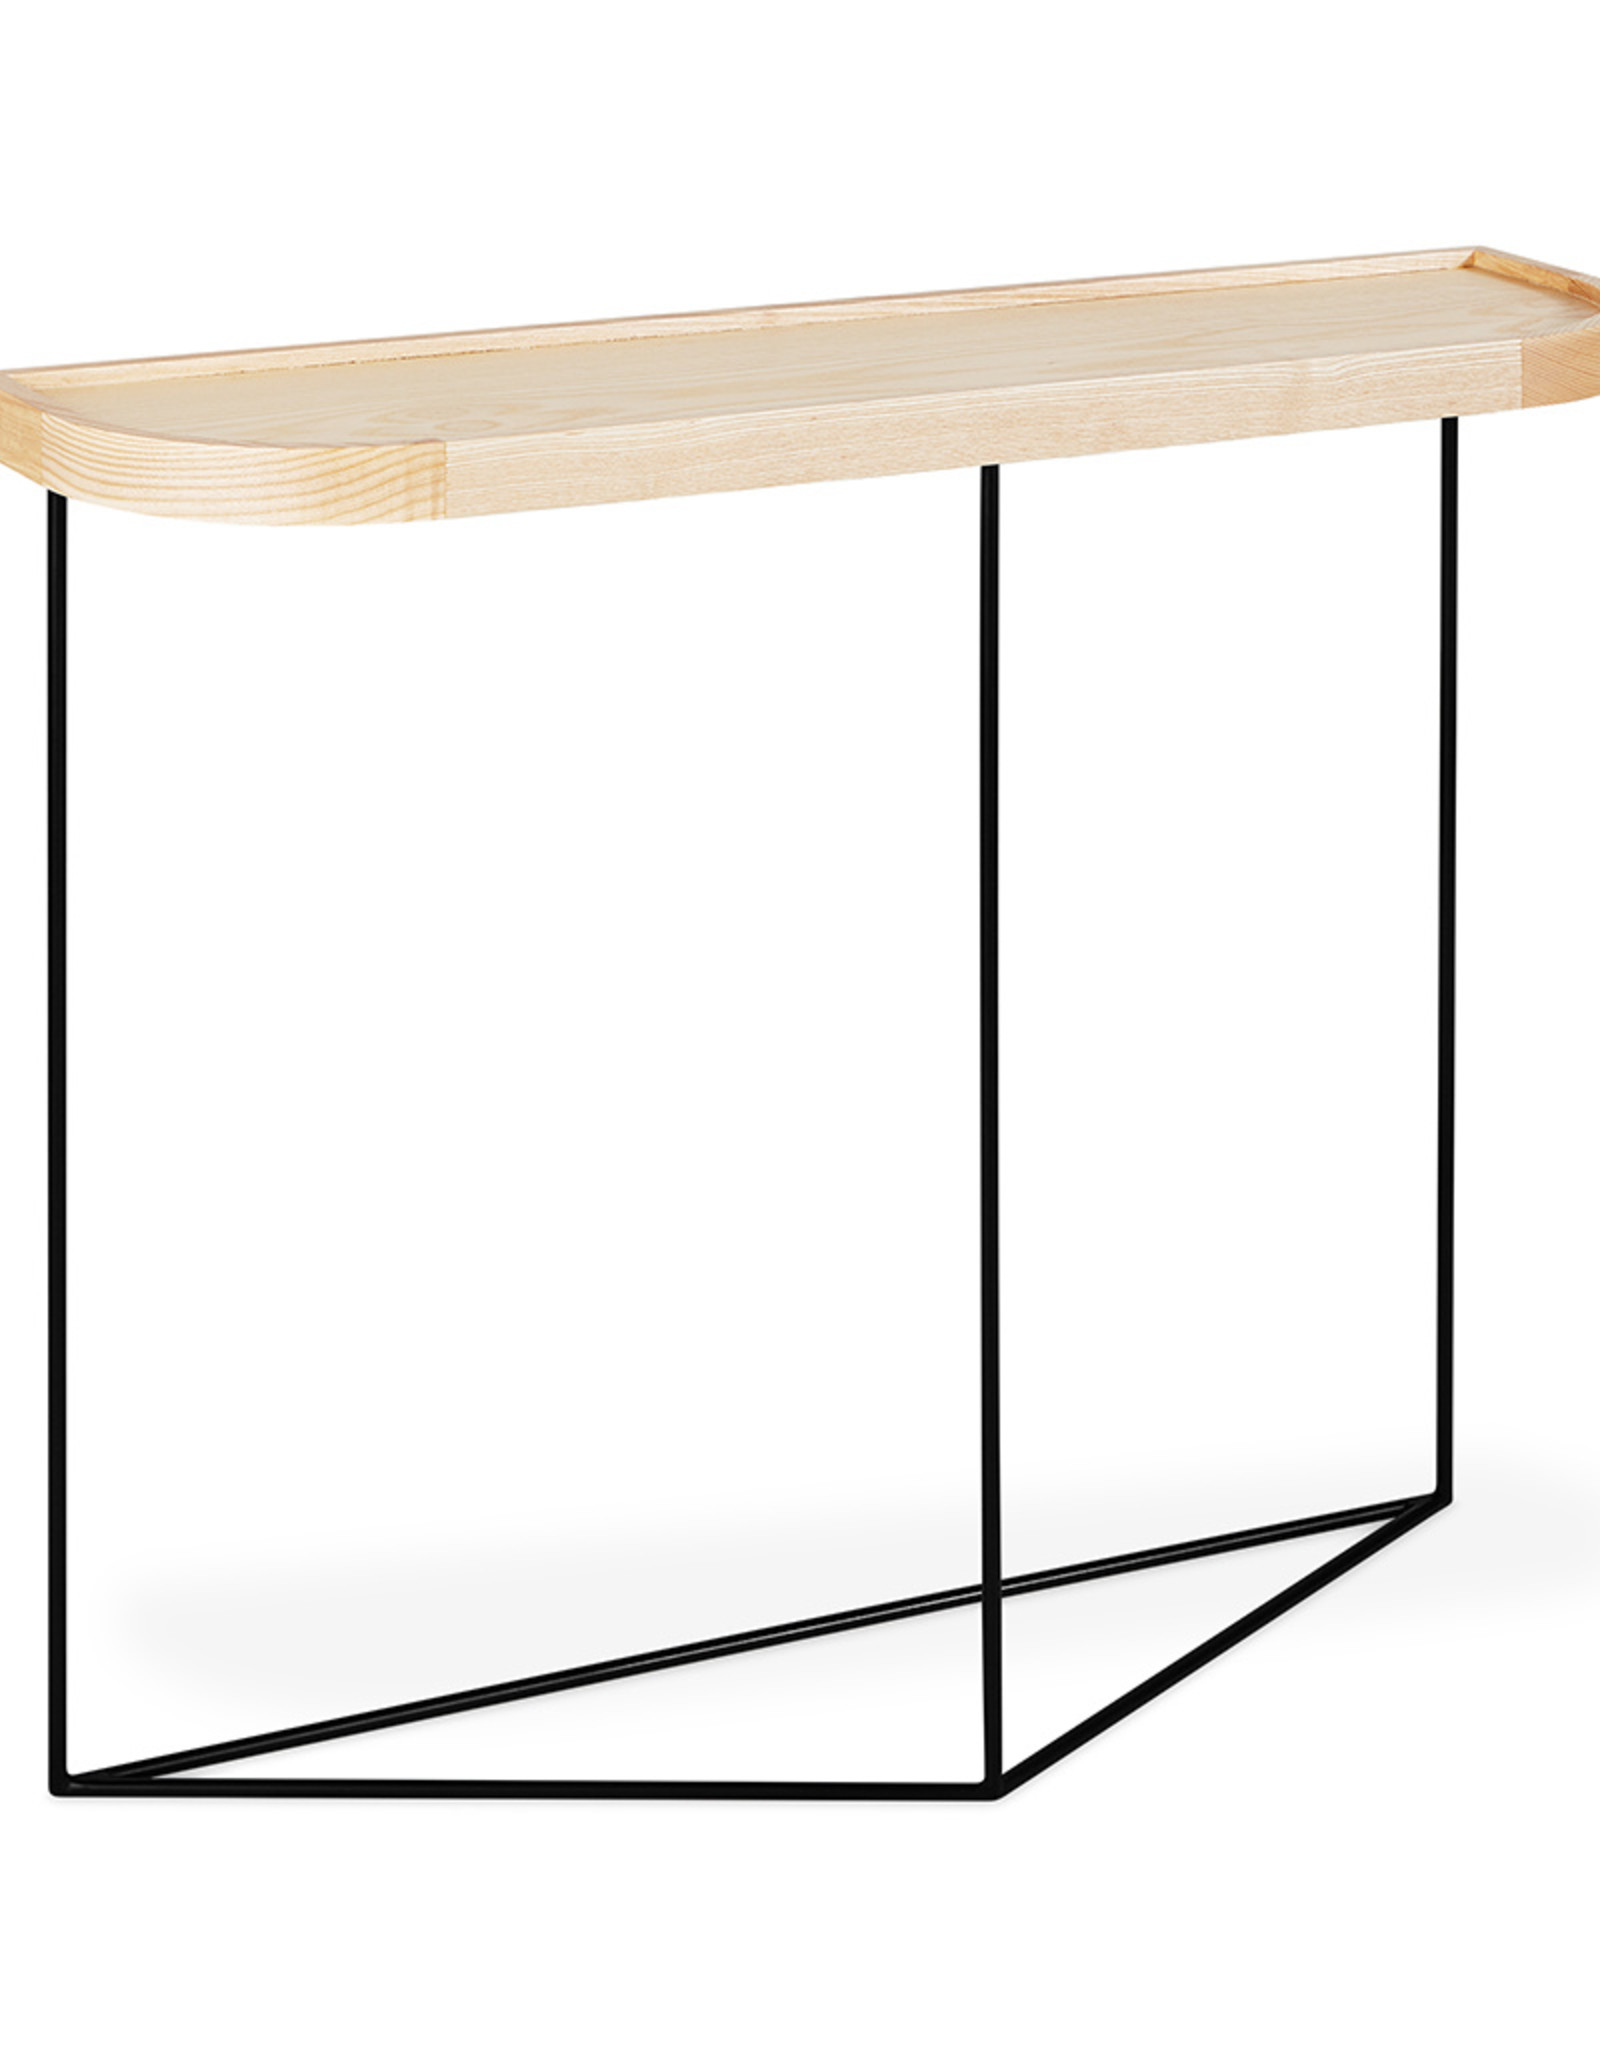 Gus* Modern Porter Console Table